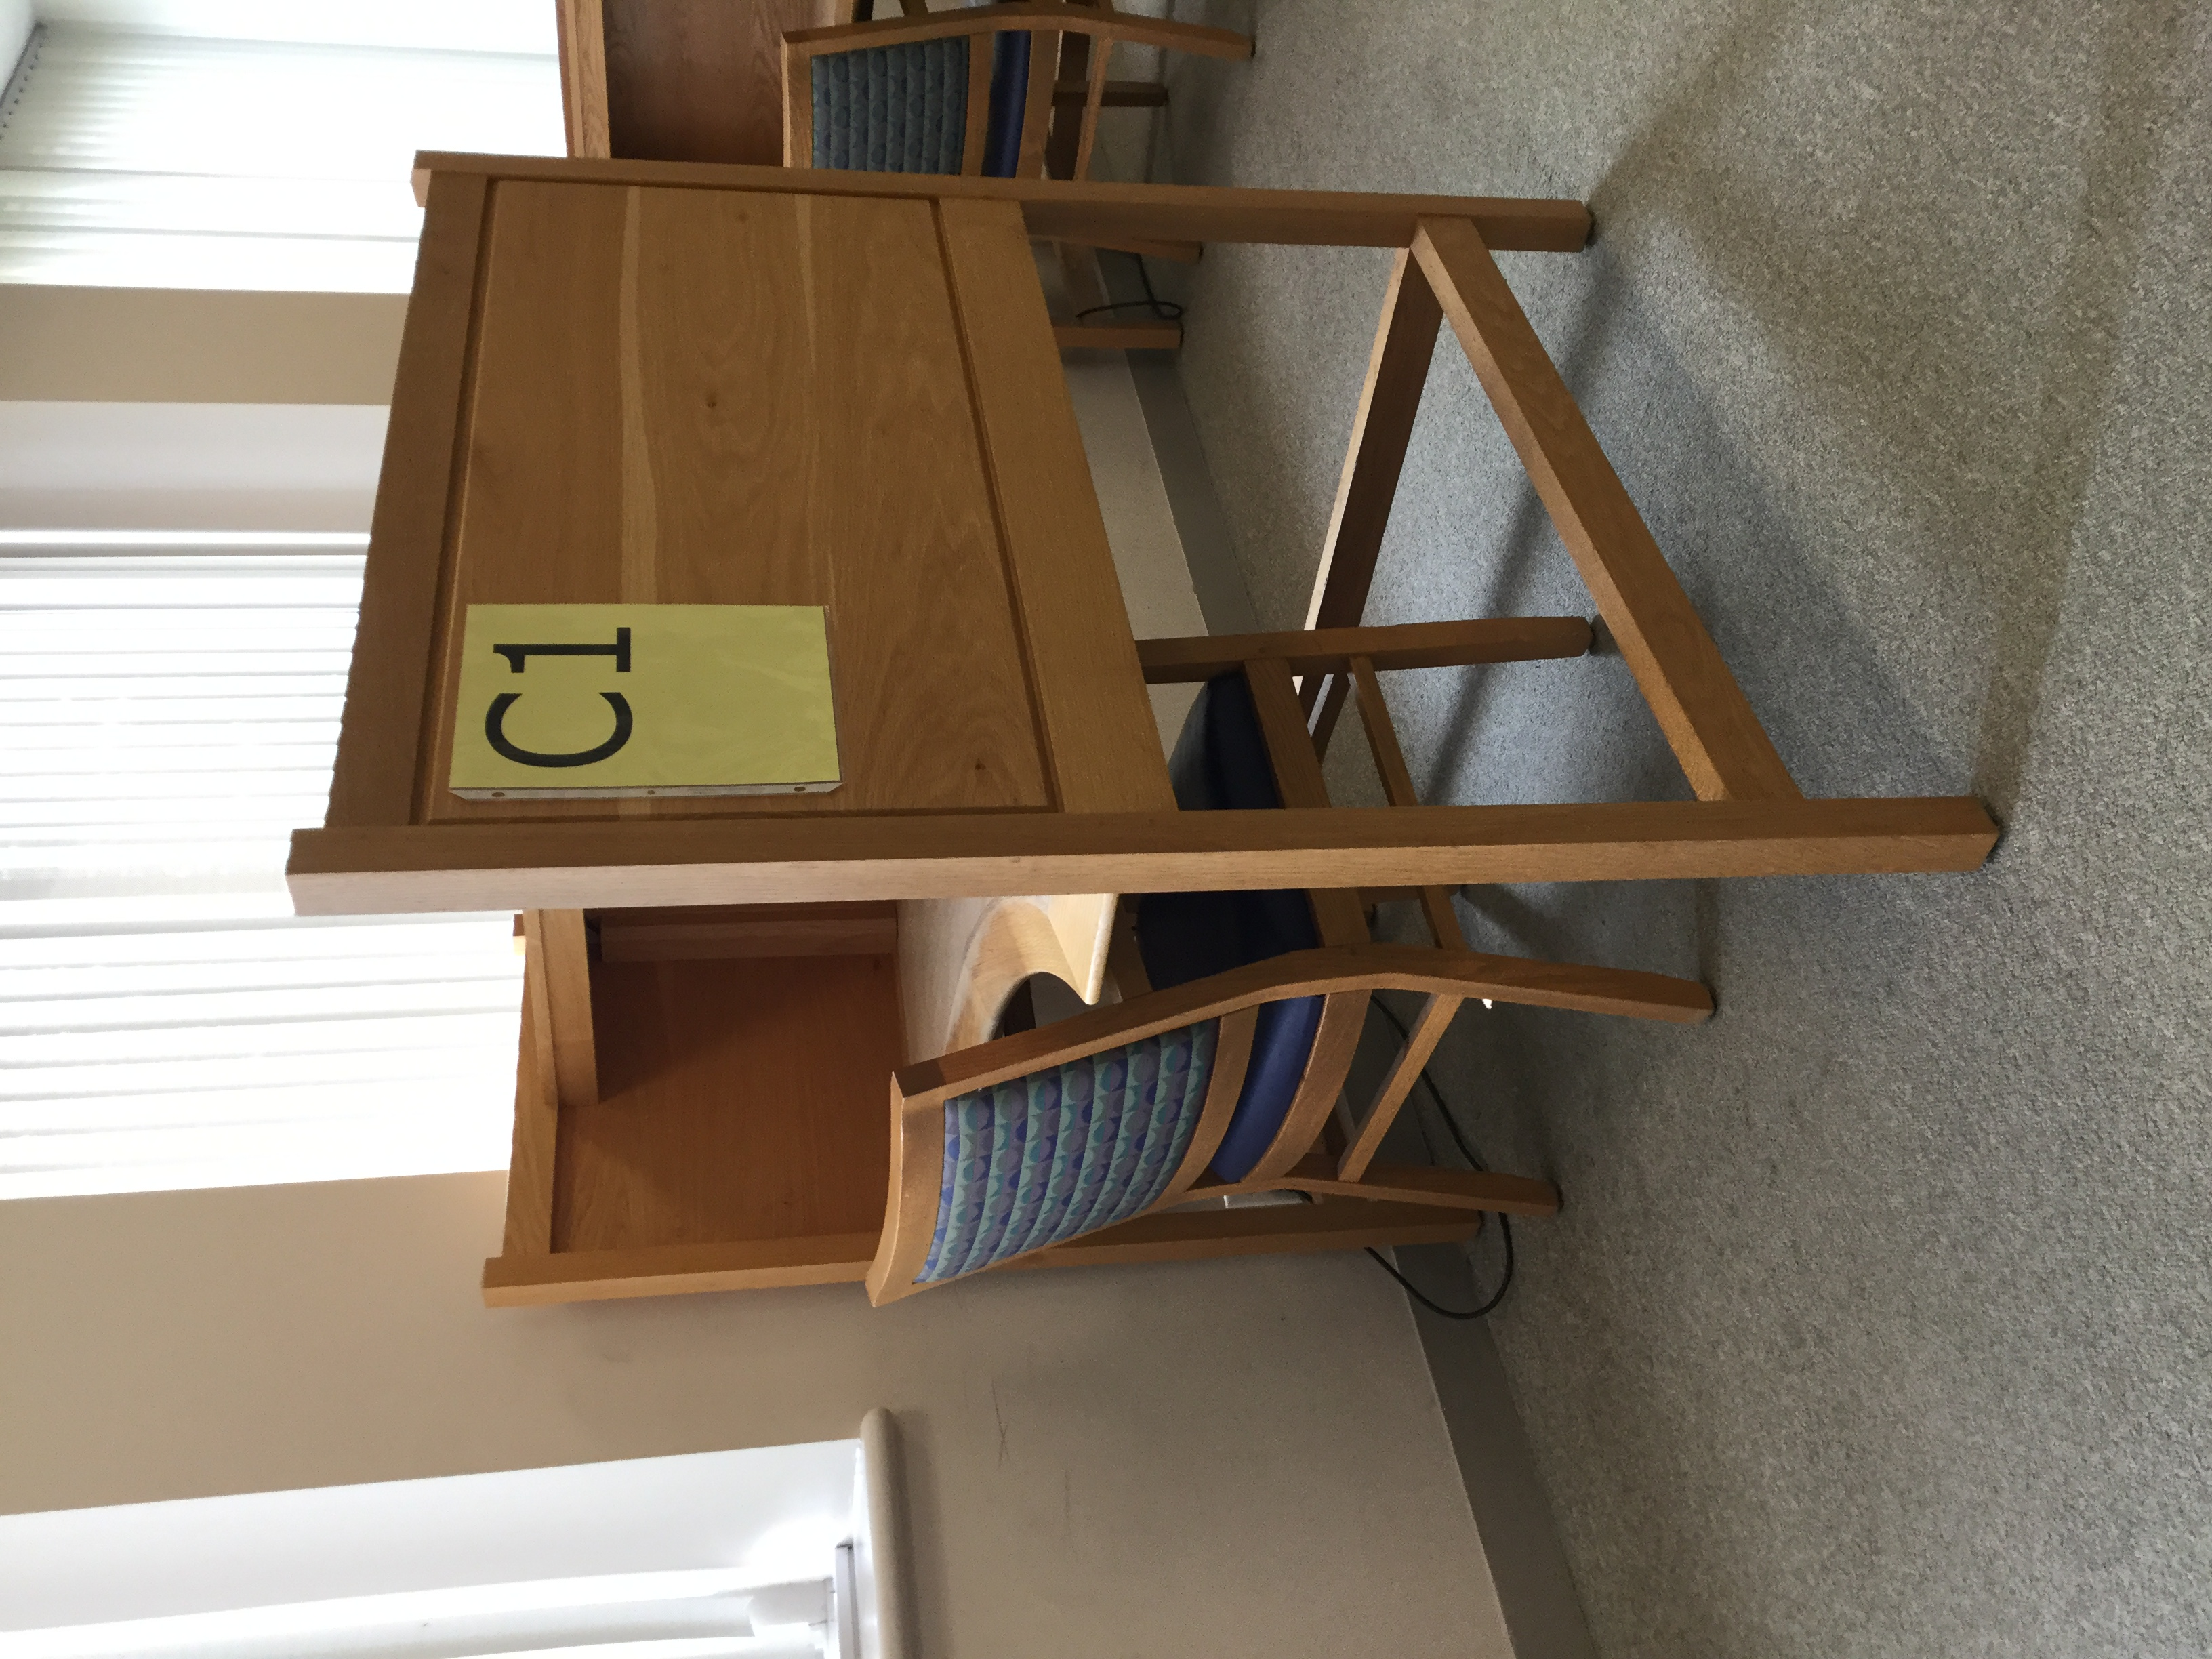 image shows a large study carrel with high sides and a chair, numbered C1